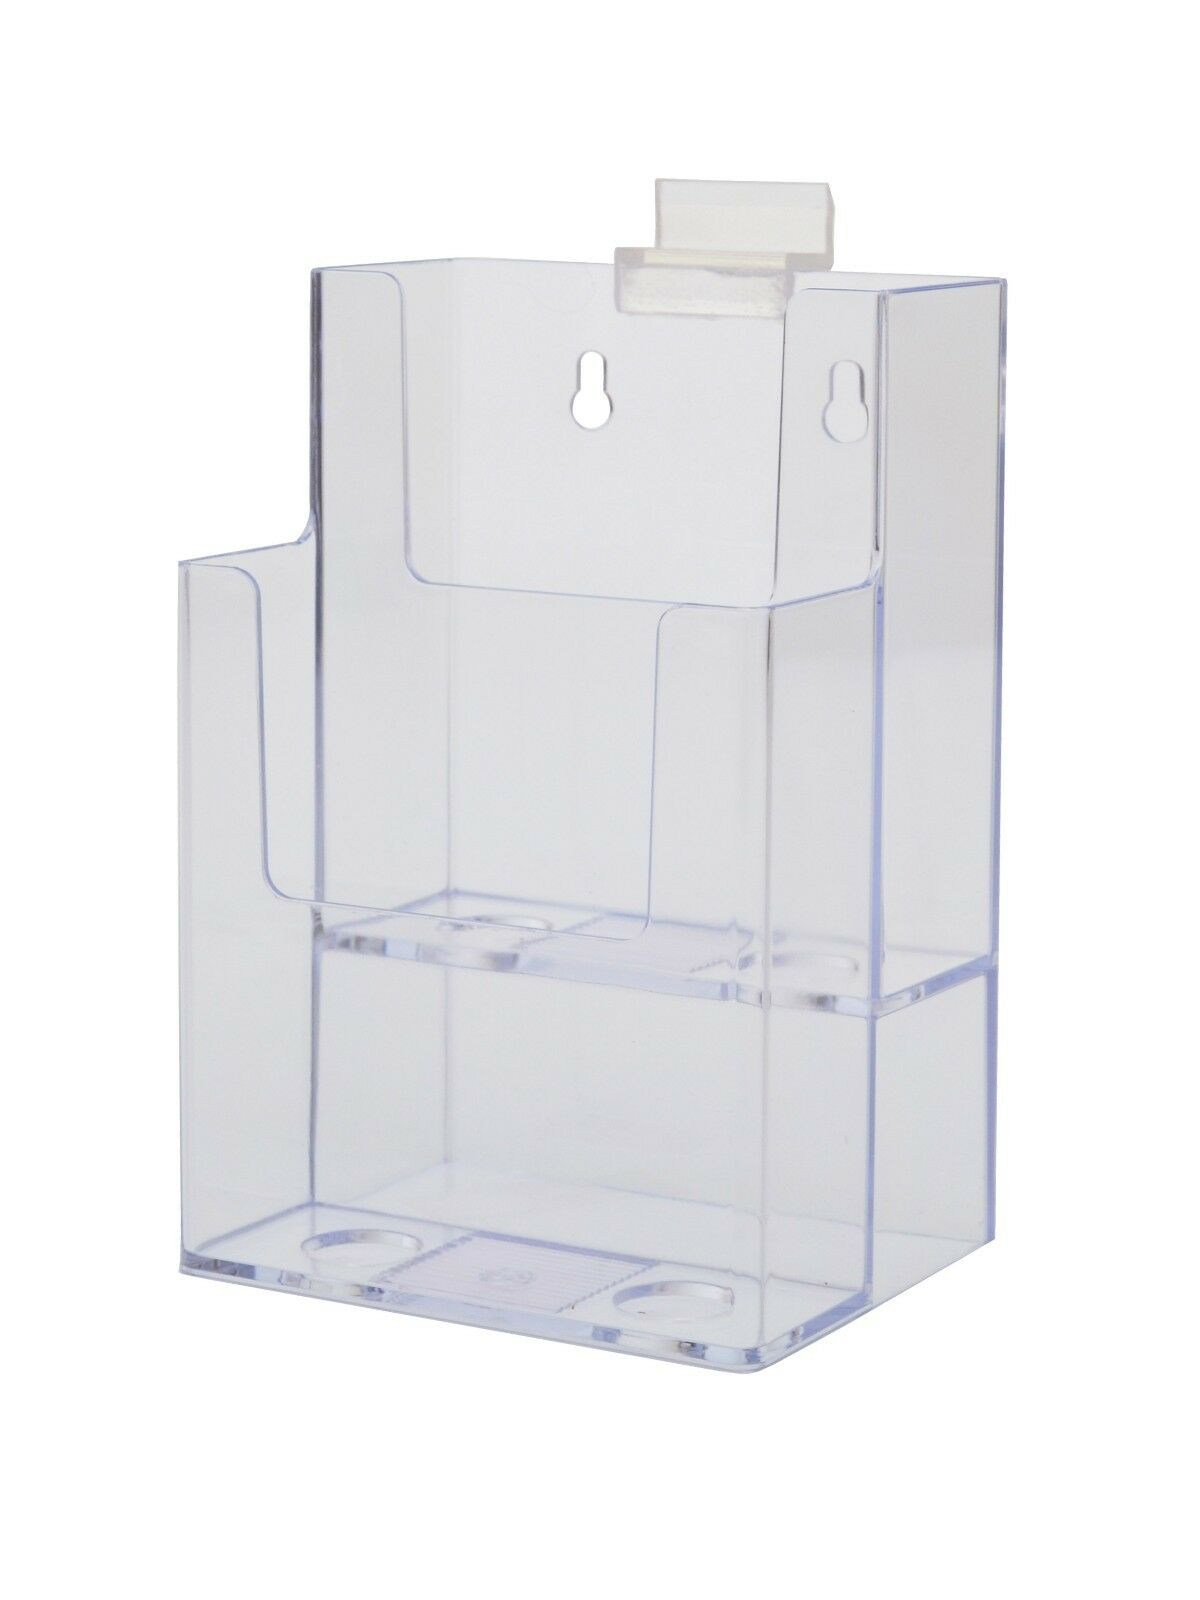 Lot of 12 Clear Acrylic 2-Tier Slatwall Brochure Holder for 4 w Literature